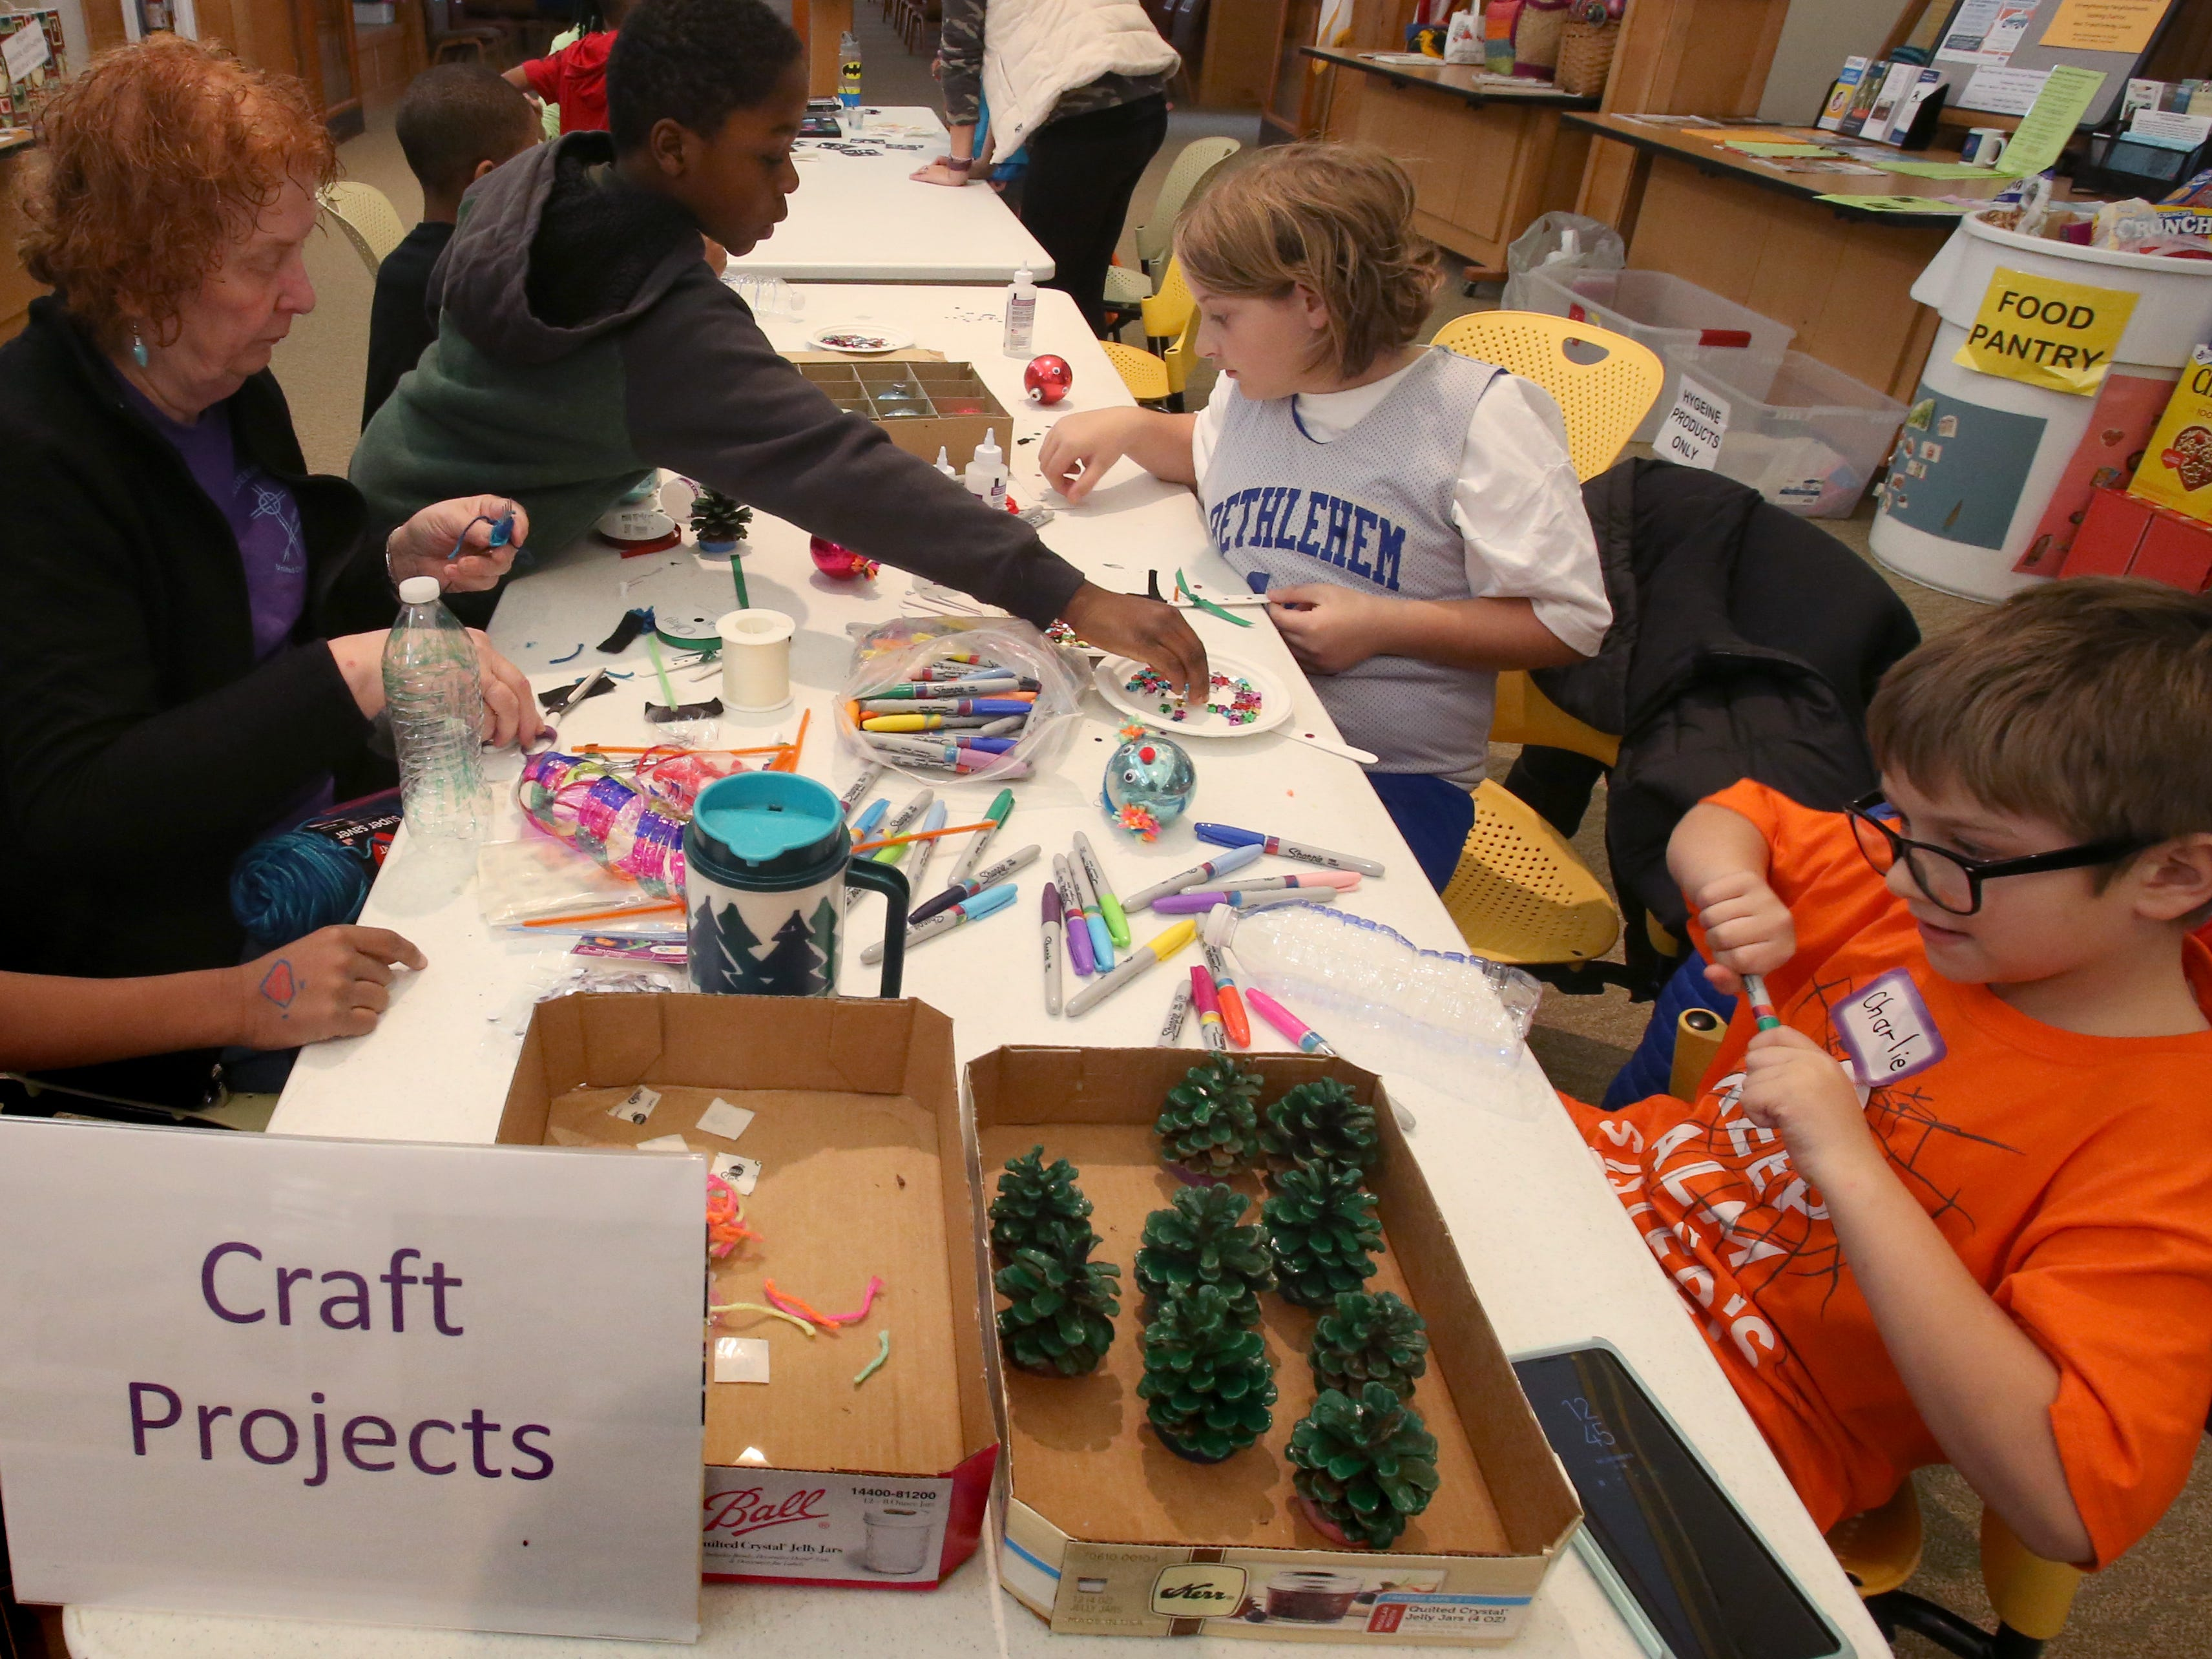 Children has an opportunity to make craft projects during the Redeemer United Church of Christ's annual Christmas Cookie Sale in Menomonee Falls on Dec. 8.